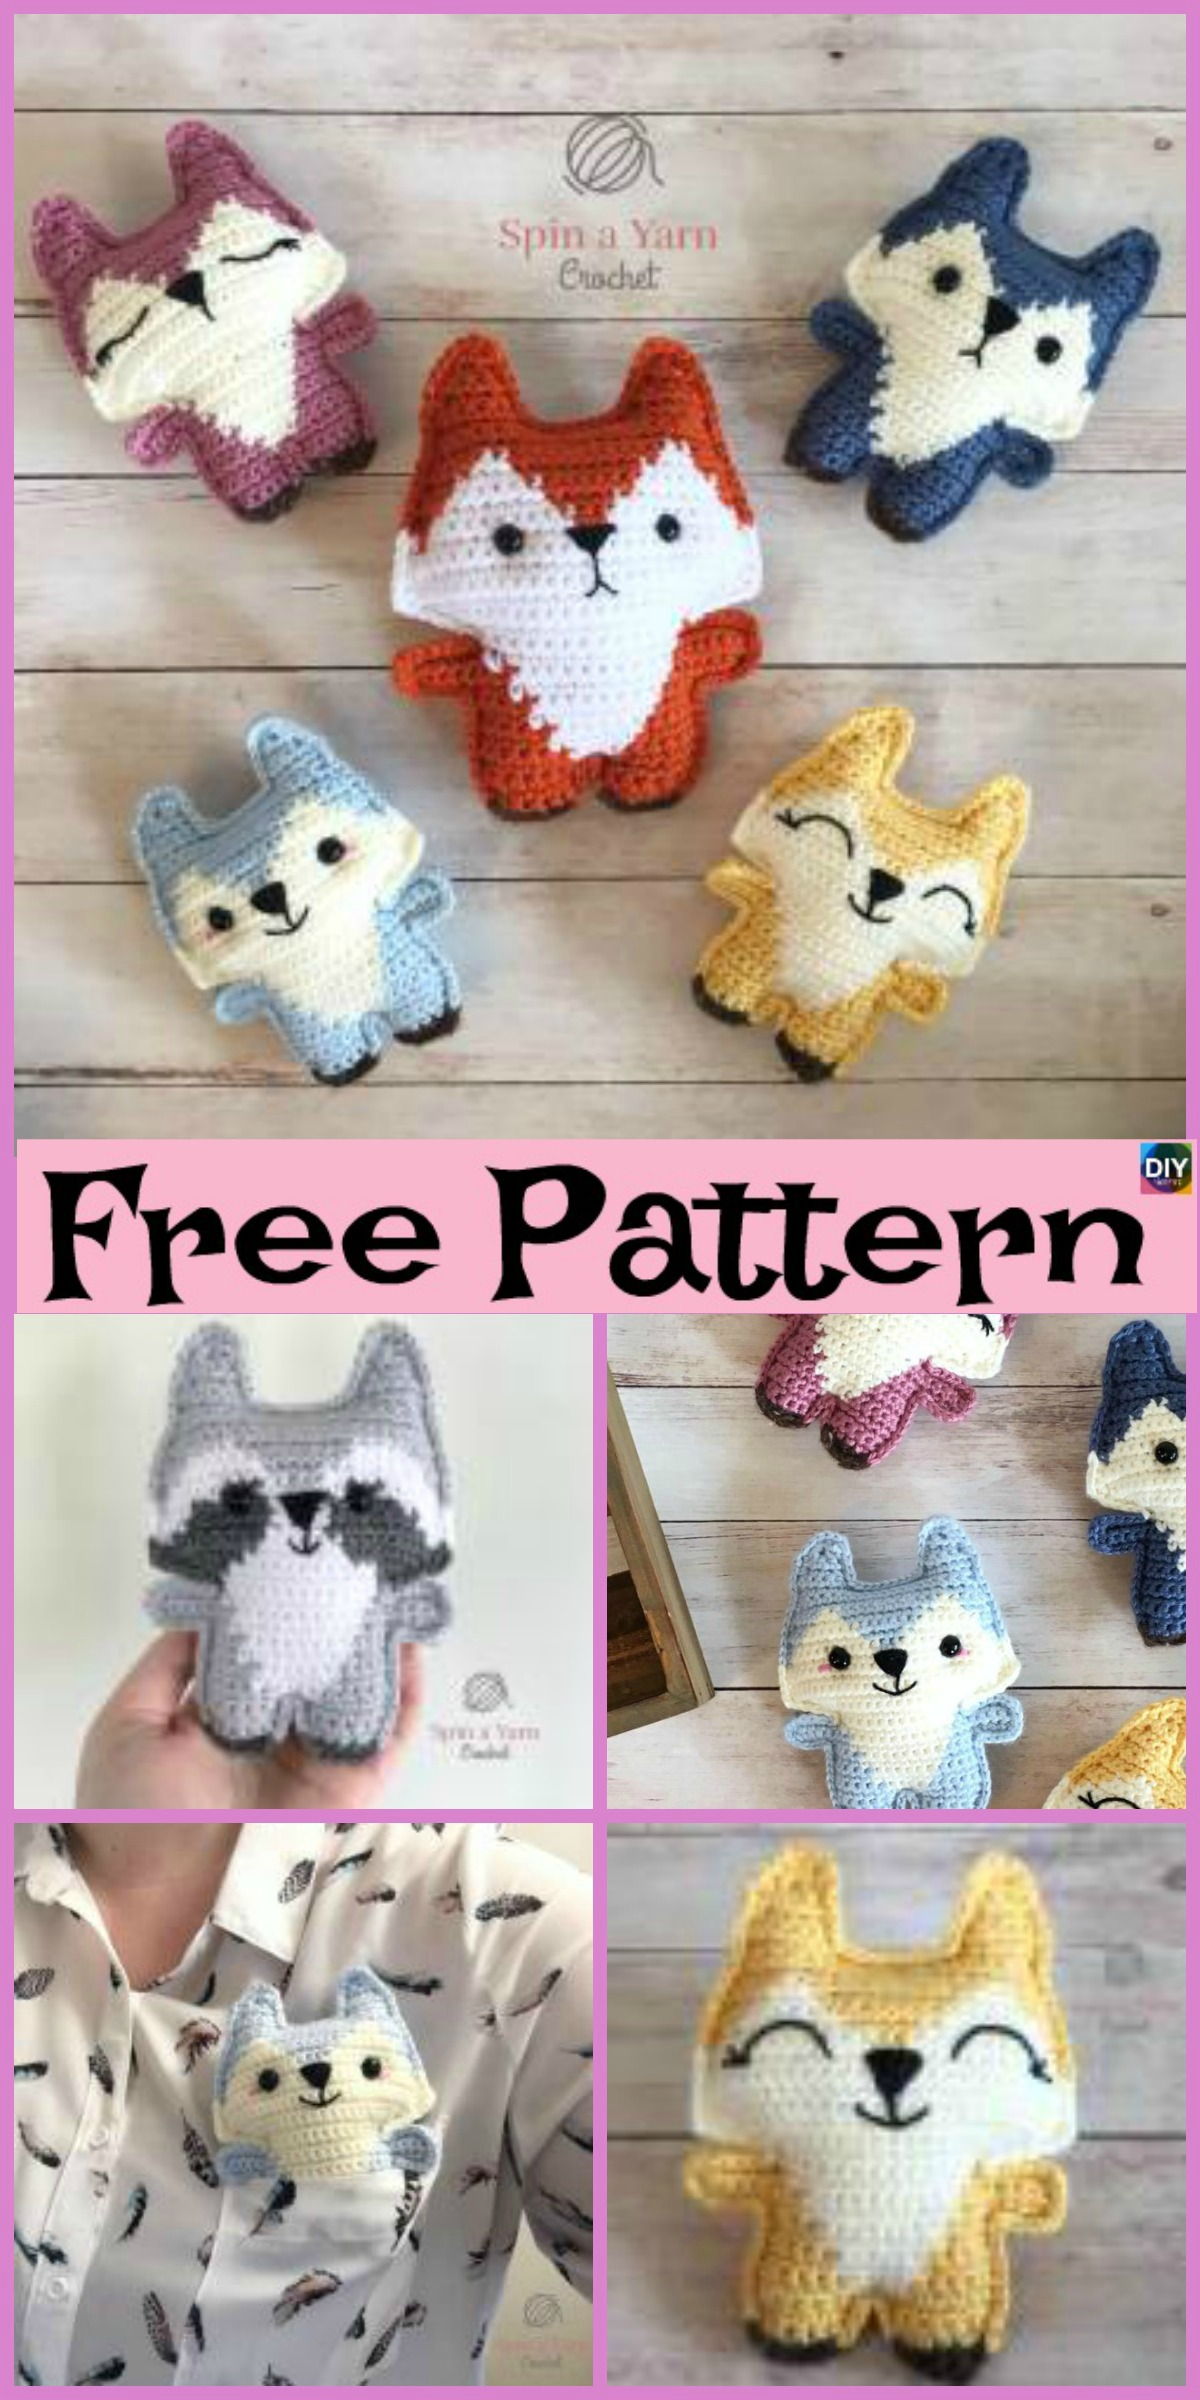 diy4ever- Cute Crochet Pocket Fox - Free Pattern